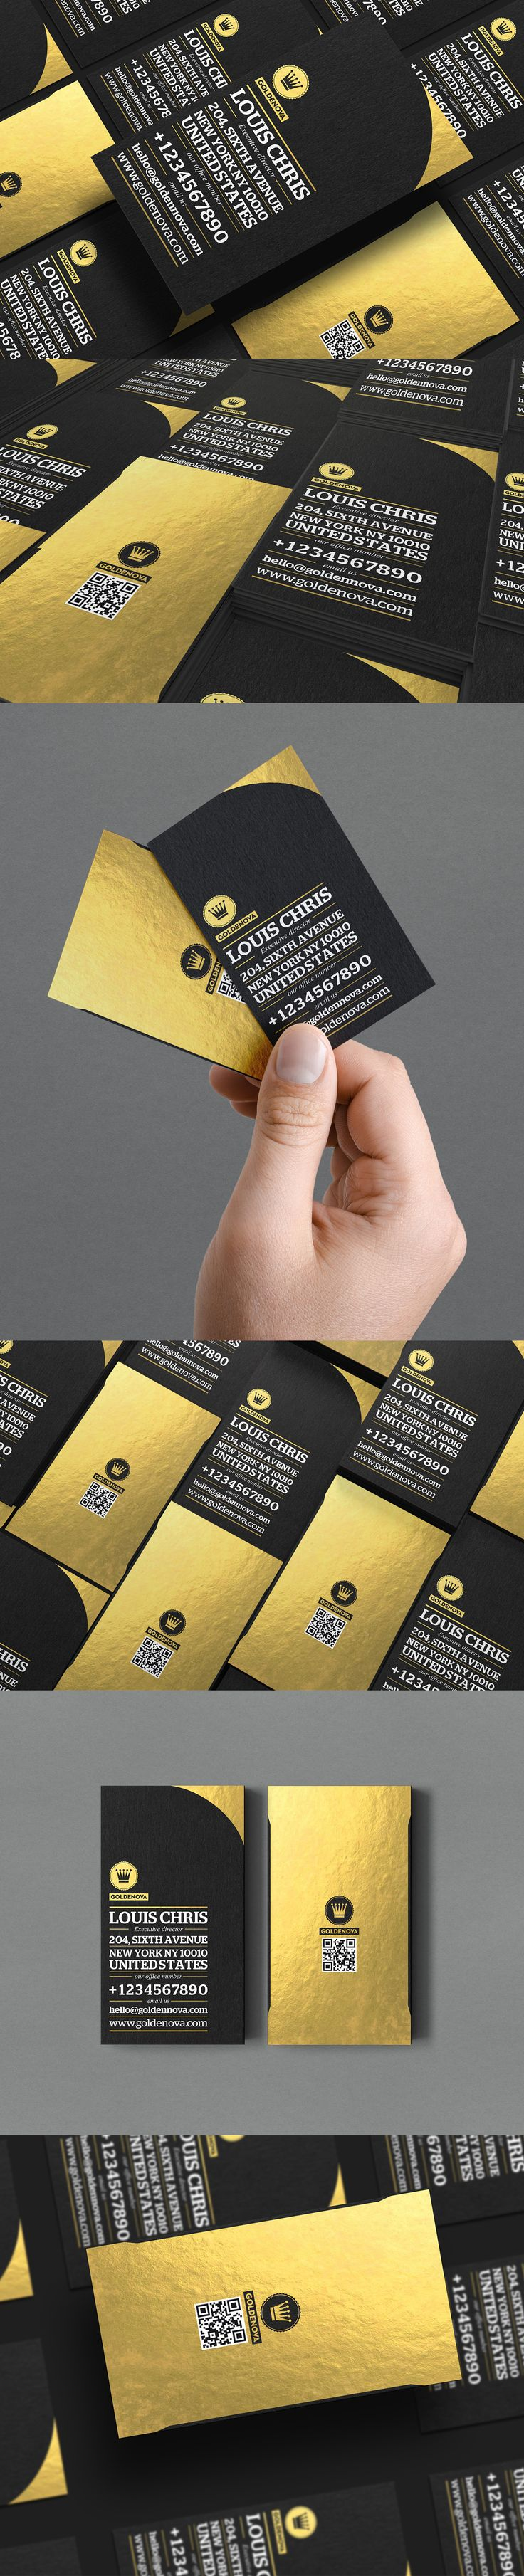 30 best business card images on pinterest